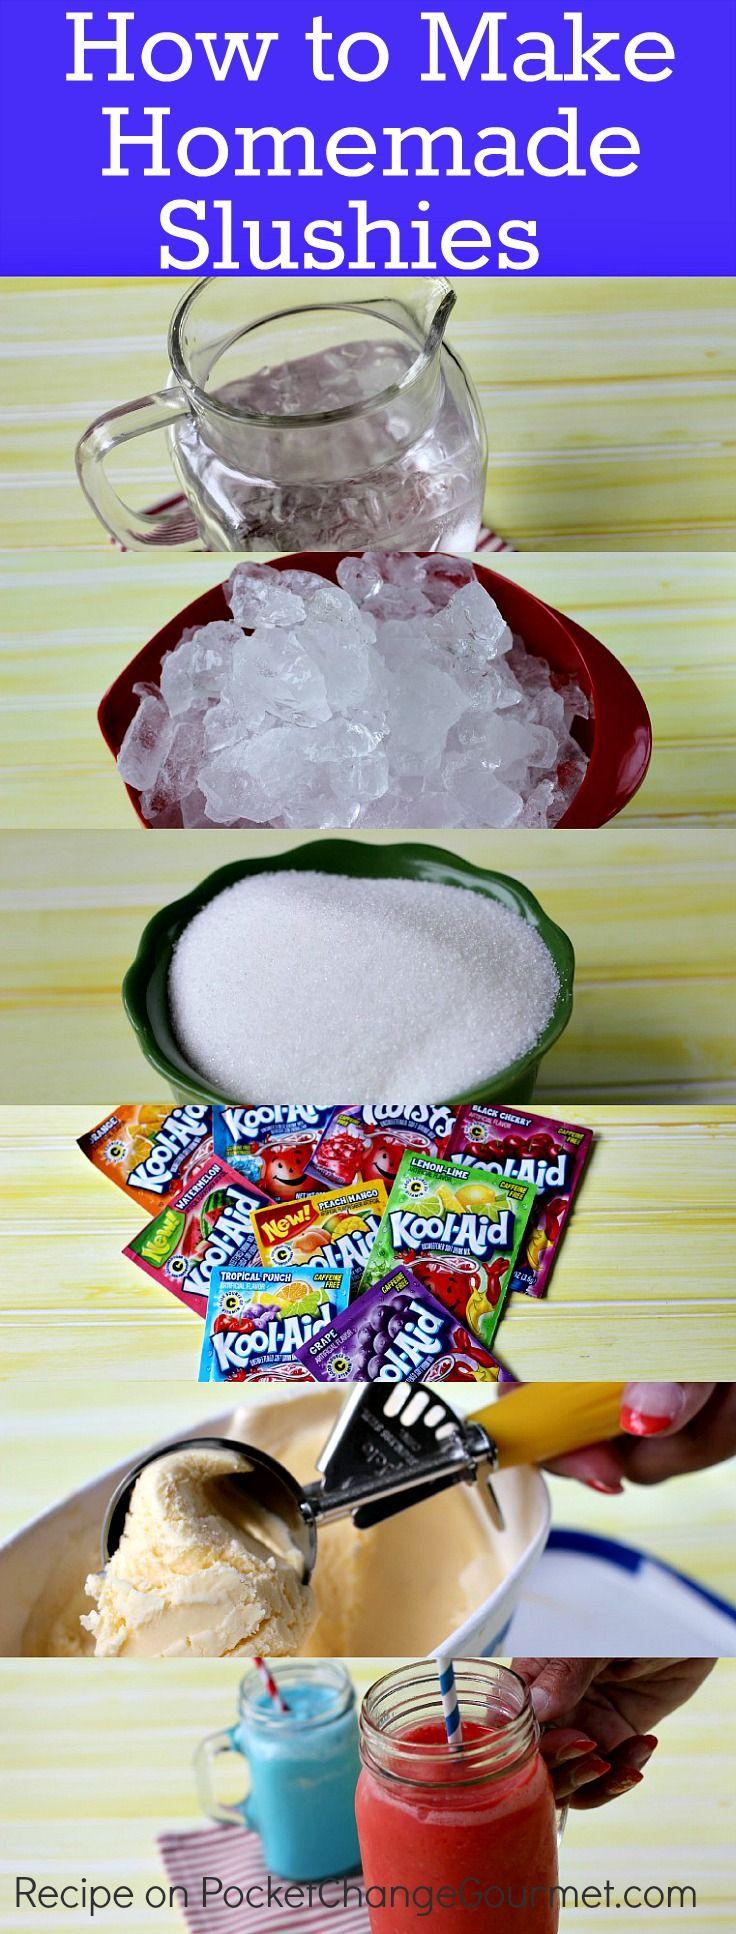 Homemade Slushies with Ice Cream | Recipe on PocketChangeGourmet.com